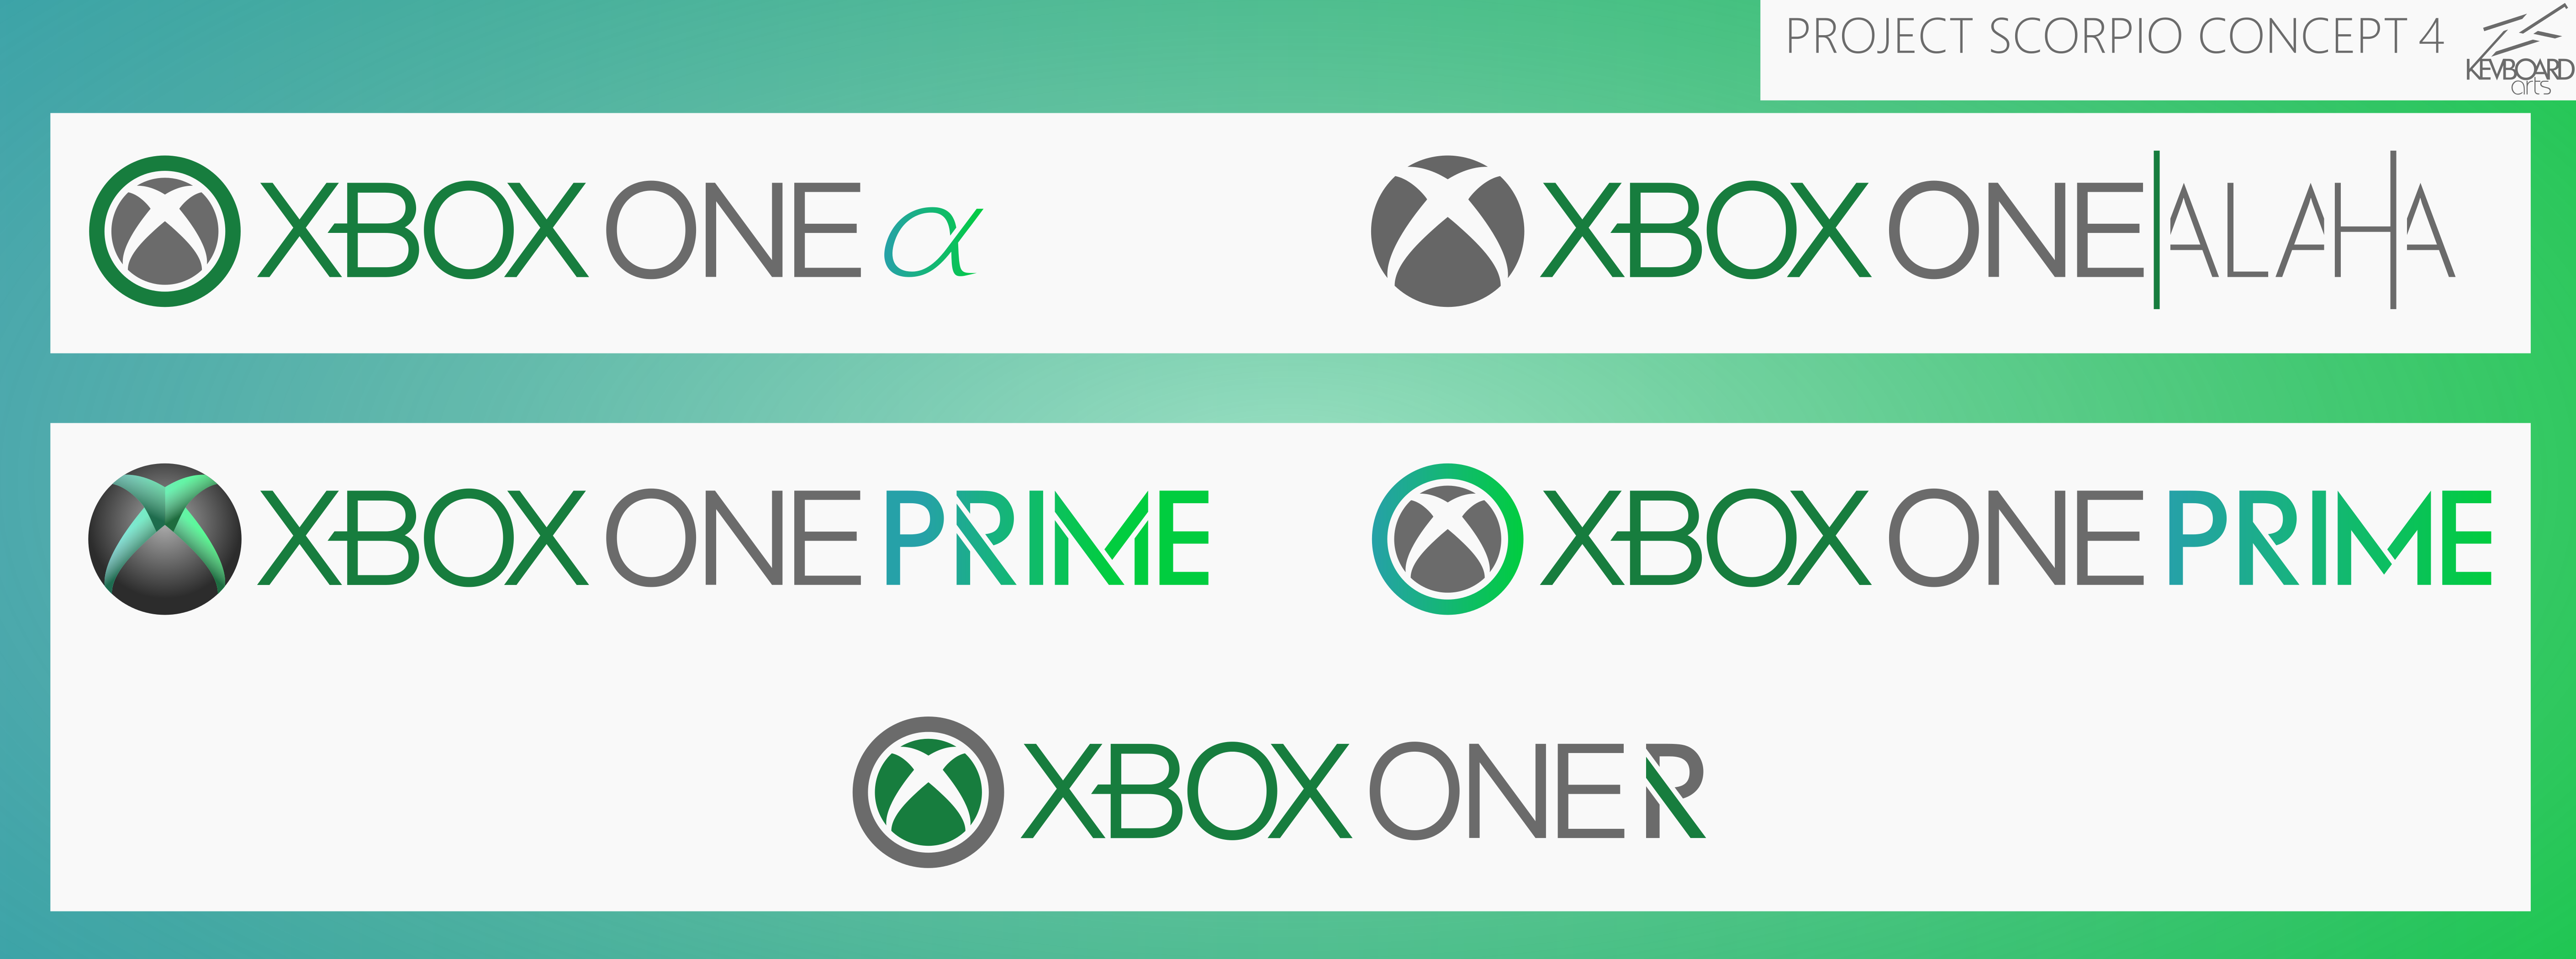 Art Show Ideas Xbox One Logo Ideas 4 Project Scorpio By Kevboard On